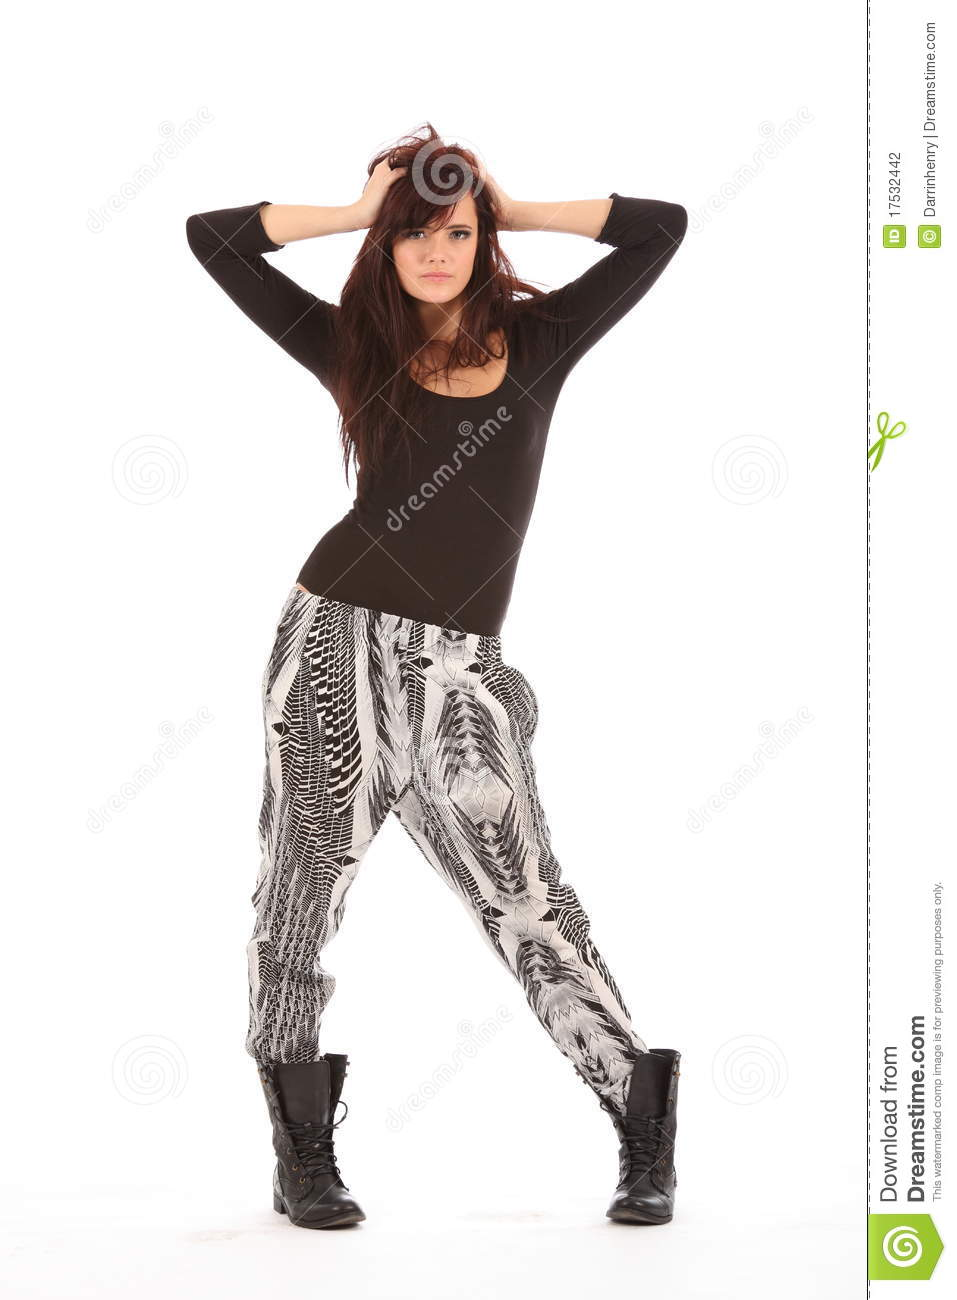 Urban Fashion Model In Black And White Outfit Stock Photo Image 17532442